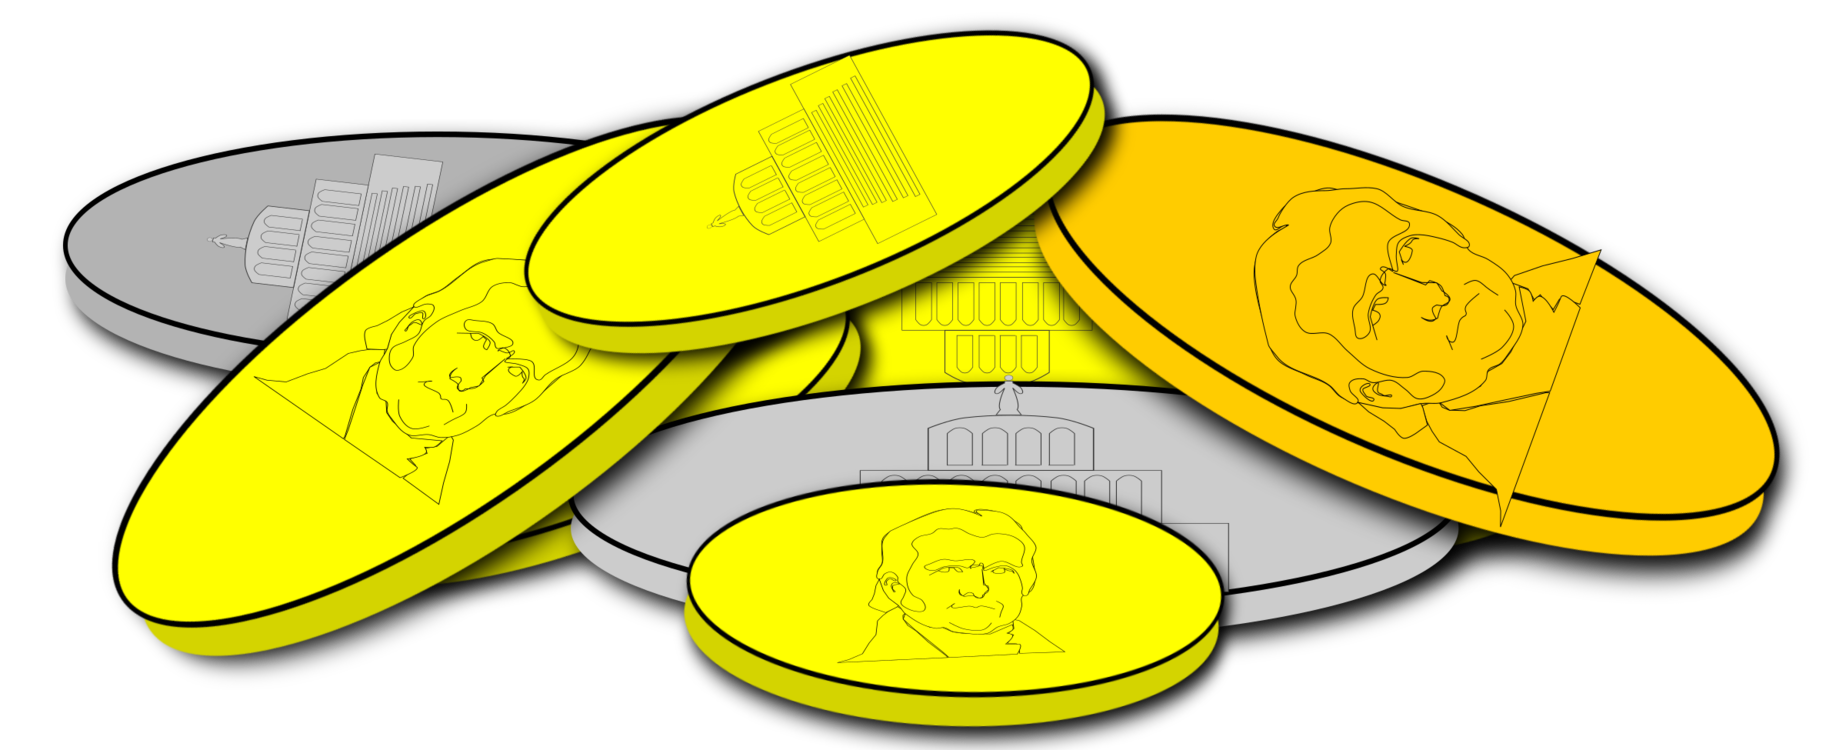 Gold clipart gold silver. Coin free commercial